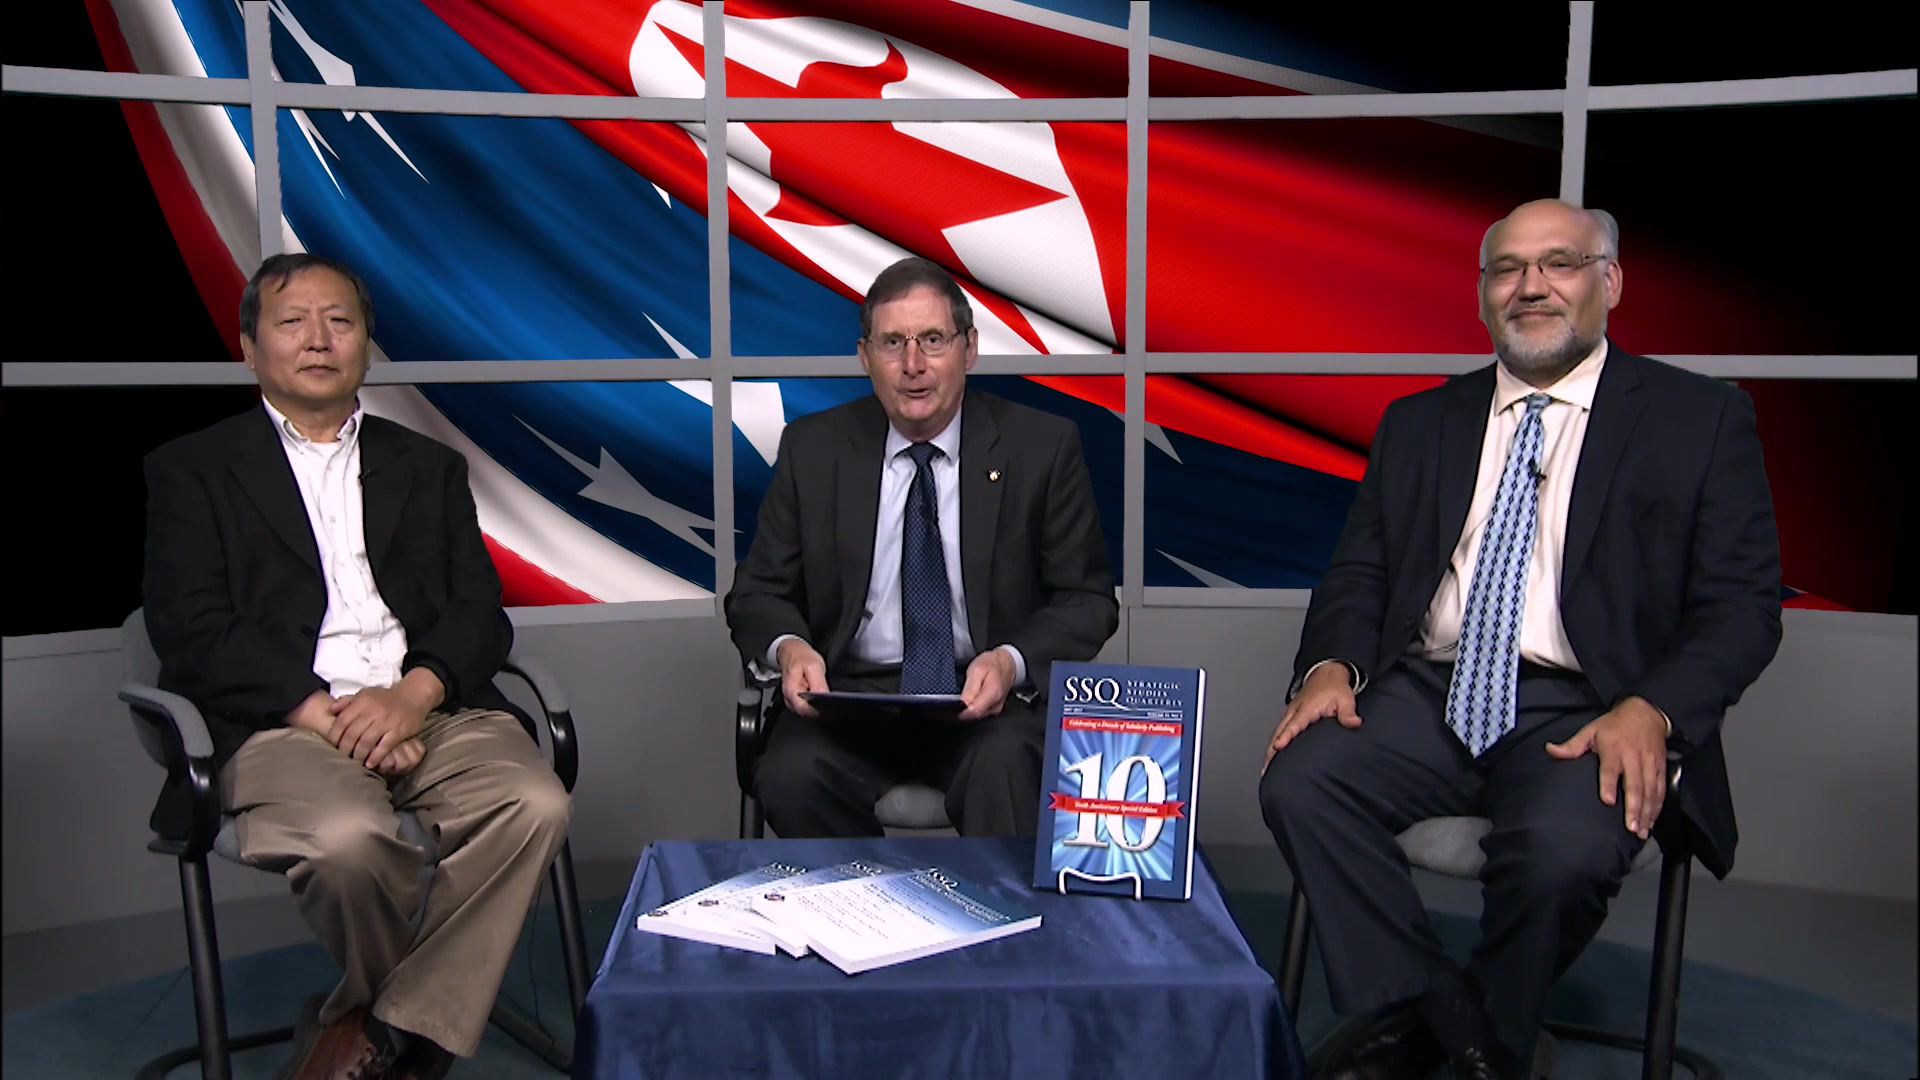 The first edition of a Strategic Studies Quarterly (SSQ): Issues and Answers, where the Editor of SSQ hosts a discussion about North Korea with 2 professors from Air University's Air War College (AWC) and Air Command and Staff College (ACSC). 